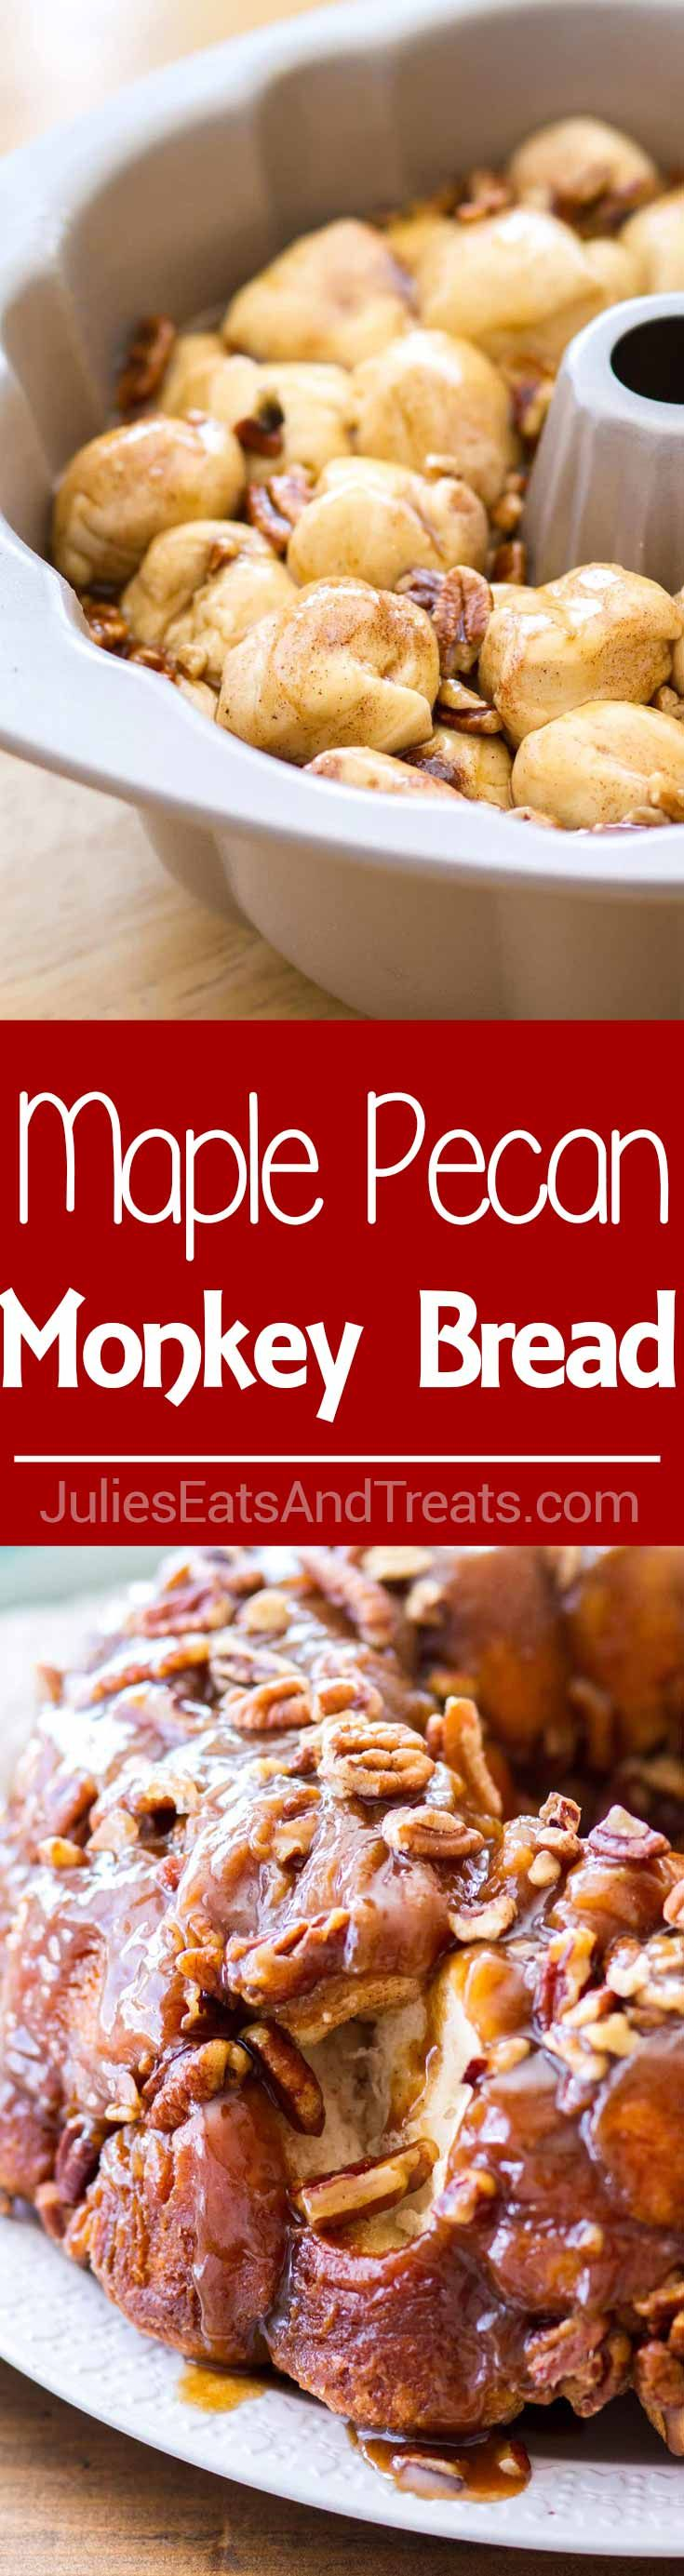 Maple Pecan Monkey Bread ~ Homemade Monkey Bread made with biscuits, baked in a maple pecan caramel sauce! Makes the best fall breakfast recipe, and a delicious Thanksgiving brunch recipes!  via @julieseats #monkeybread #breakfast